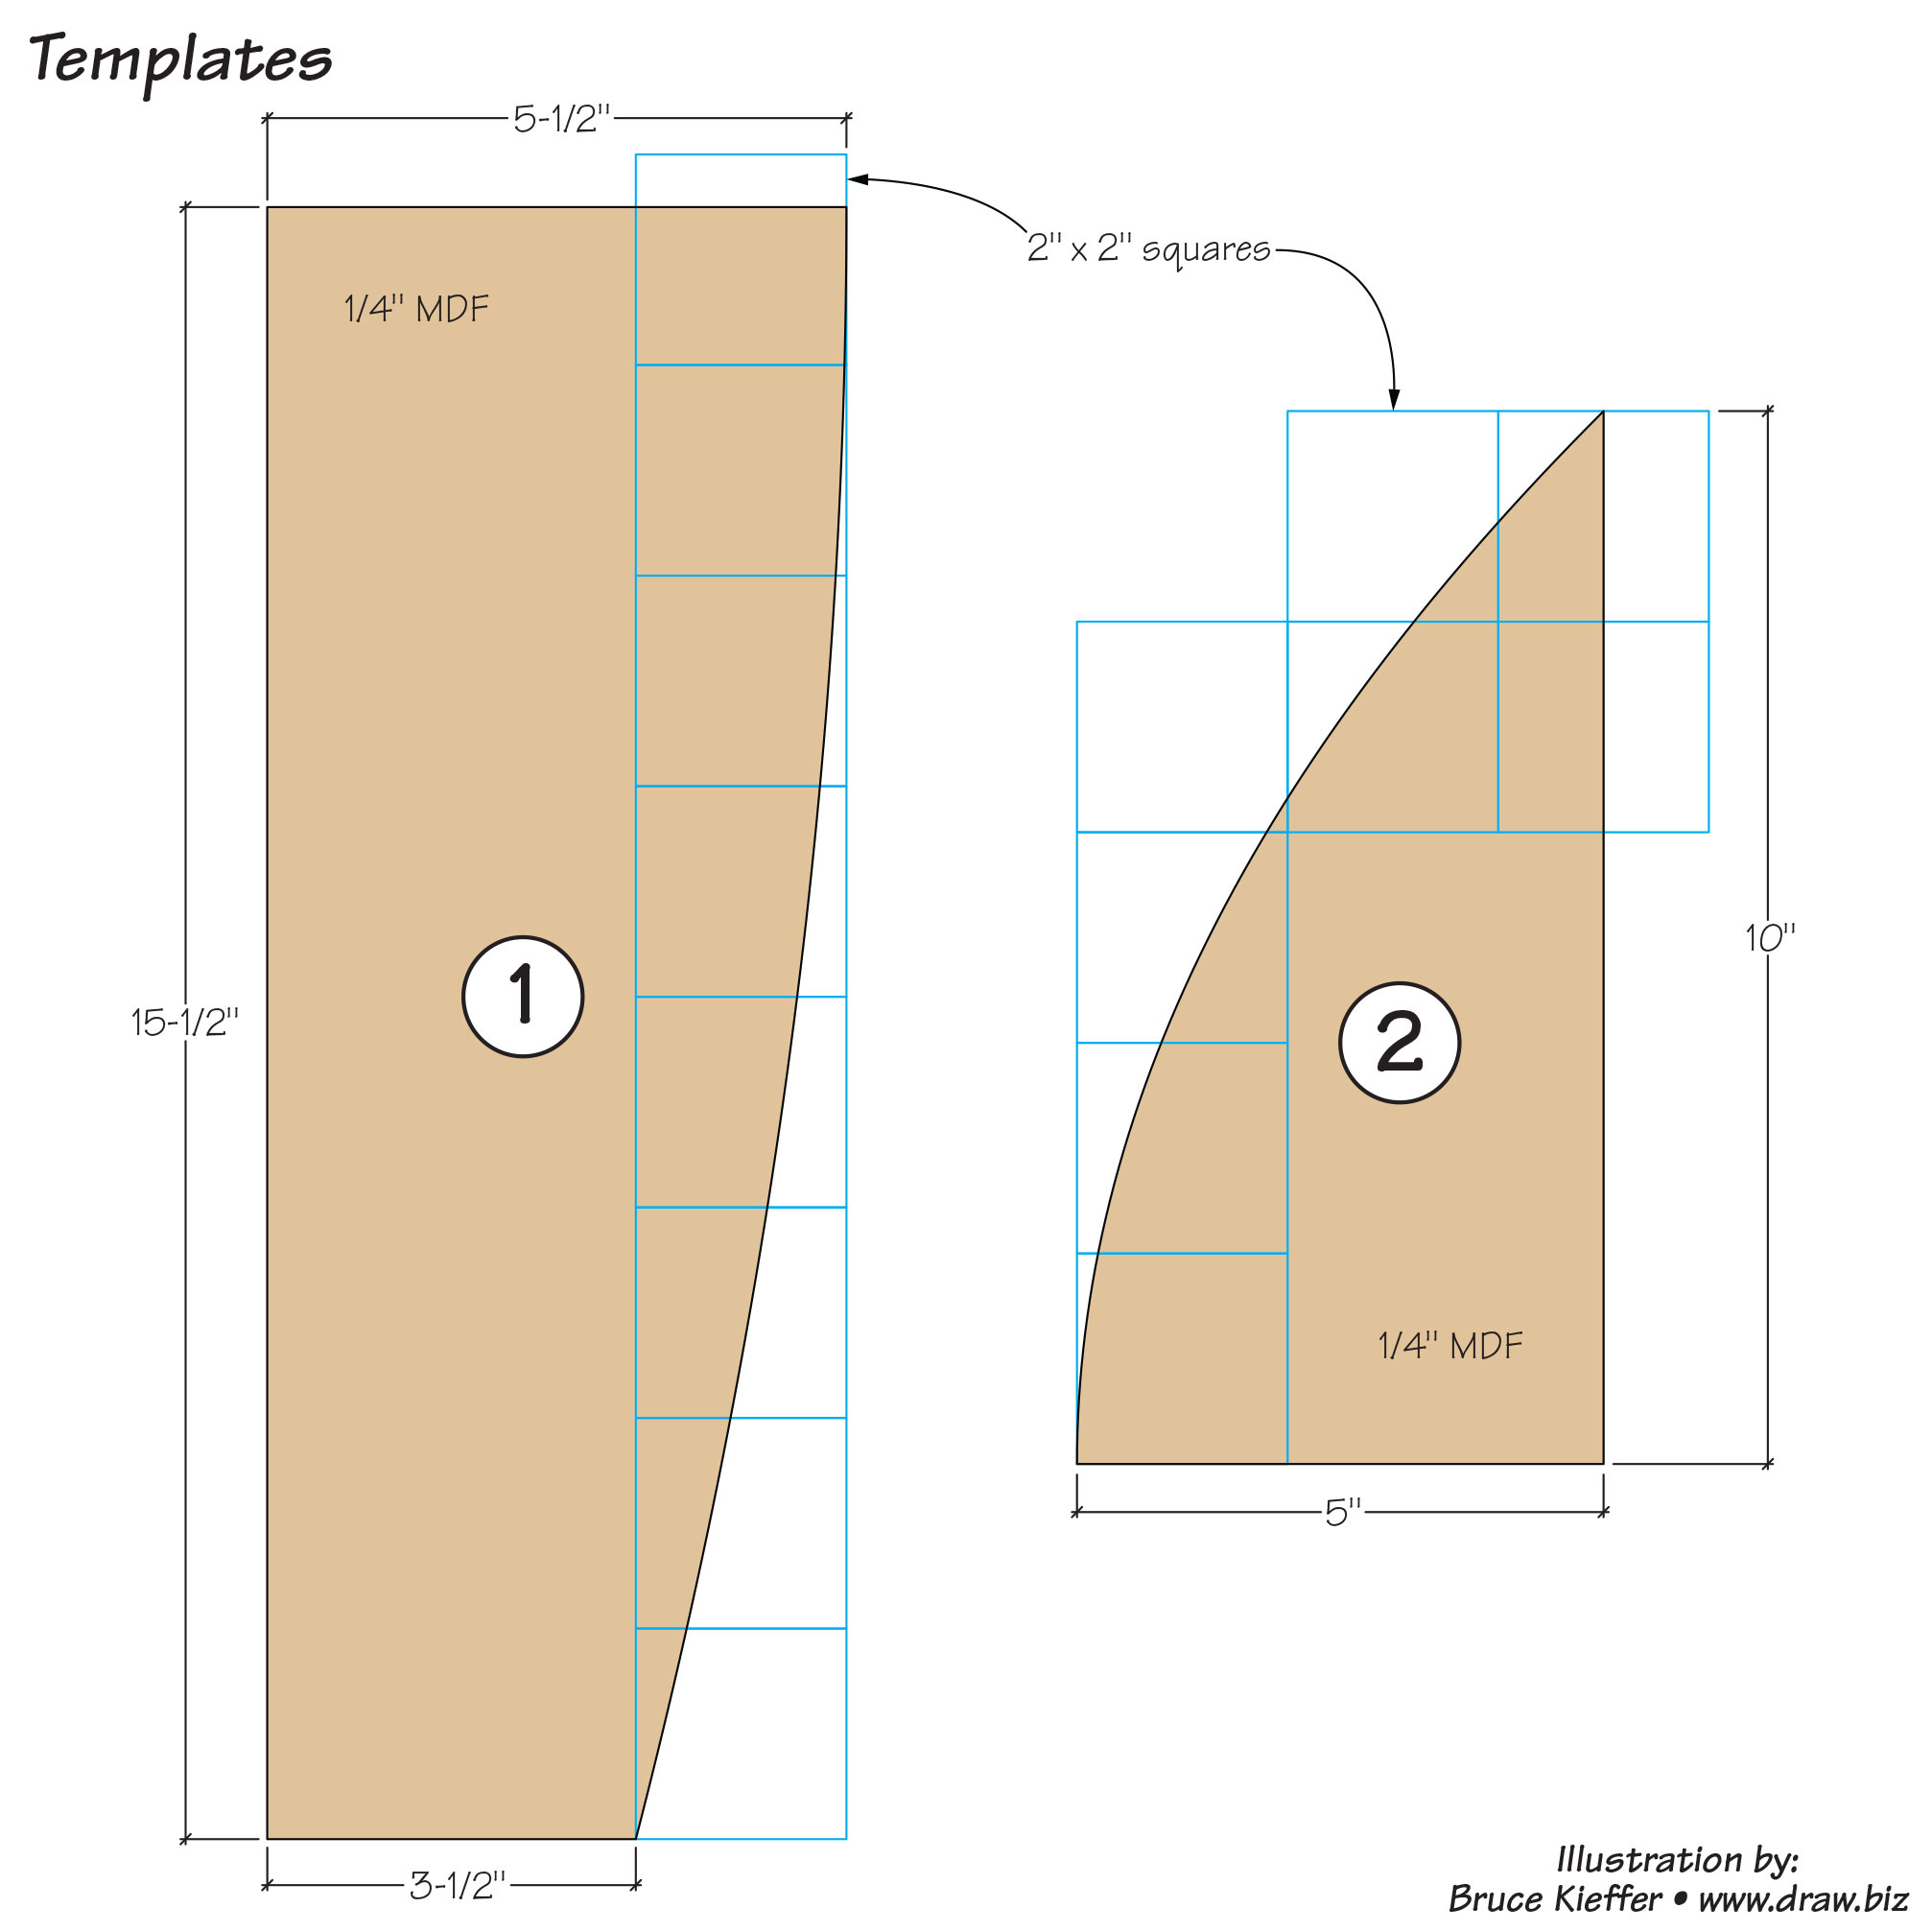 Outdoor bench plans outdoor bench plans step 2 templates pooptronica